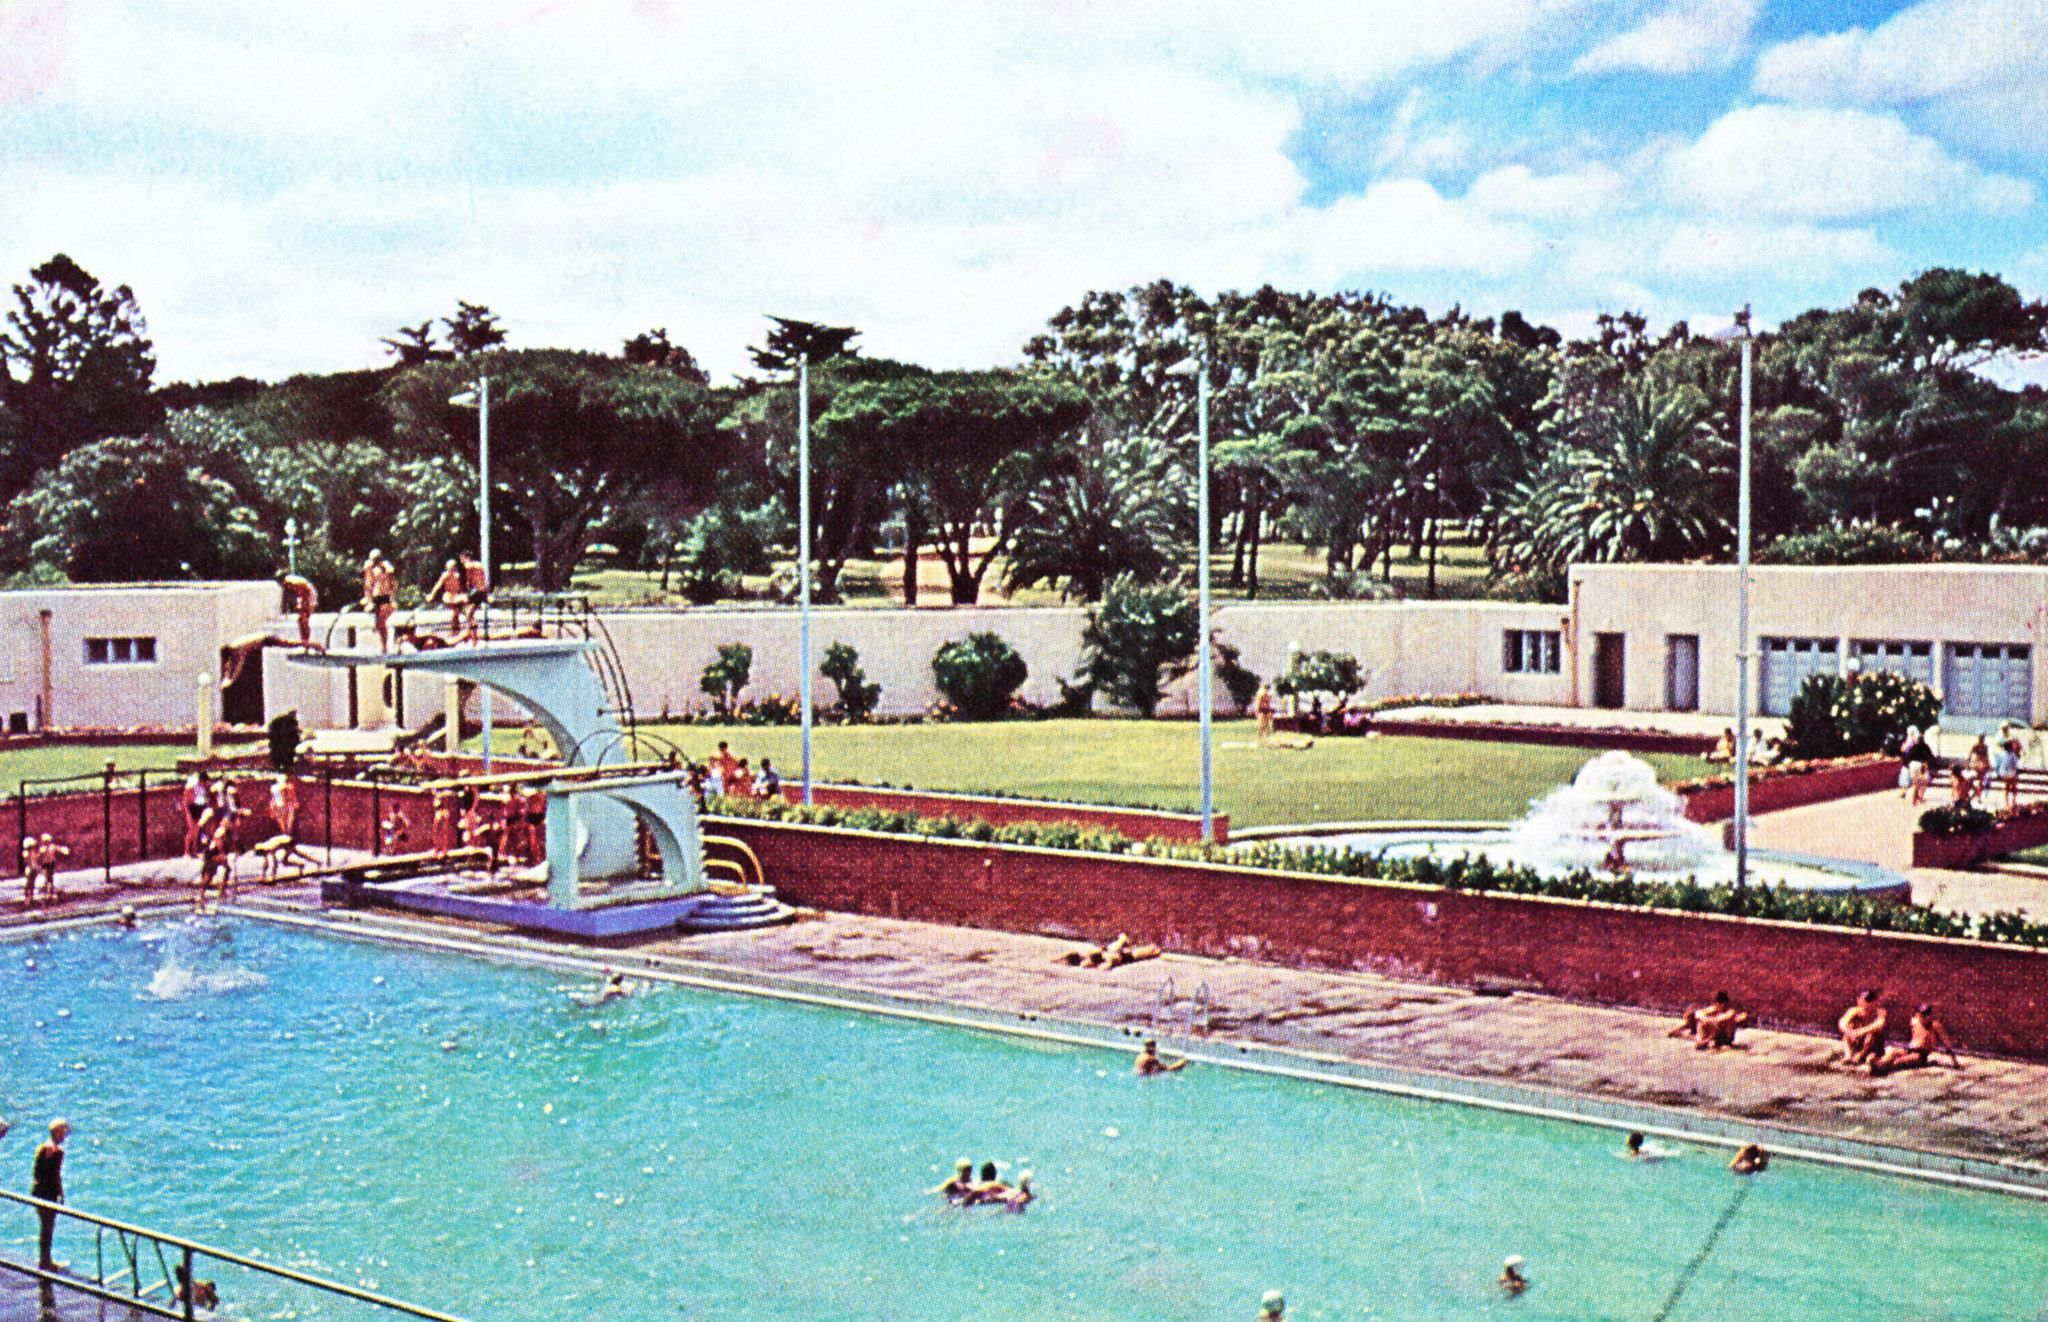 Port Elizabeth St George S Swimming Pool Ooh What Fun We Had On Those Diving Boards Port Elizabeth Historical Place St George S Park